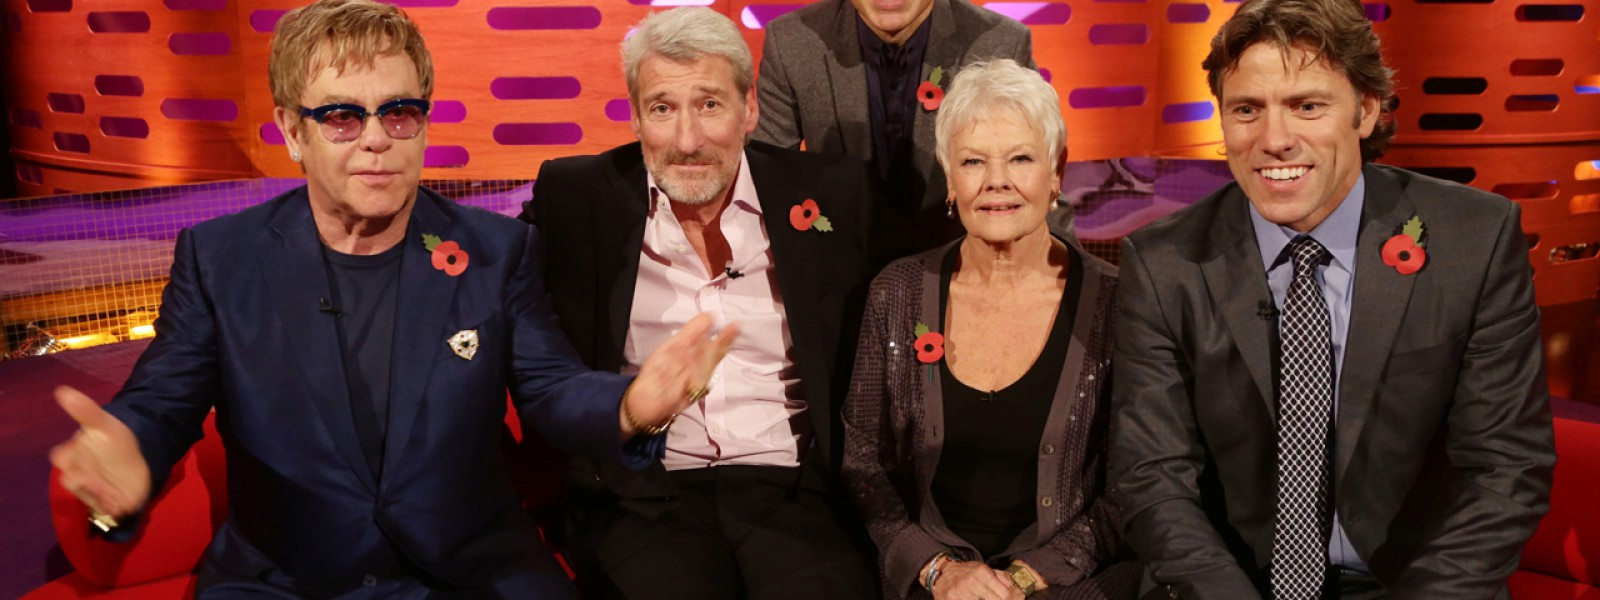 the-graham-norton-show-s14-ep4-01